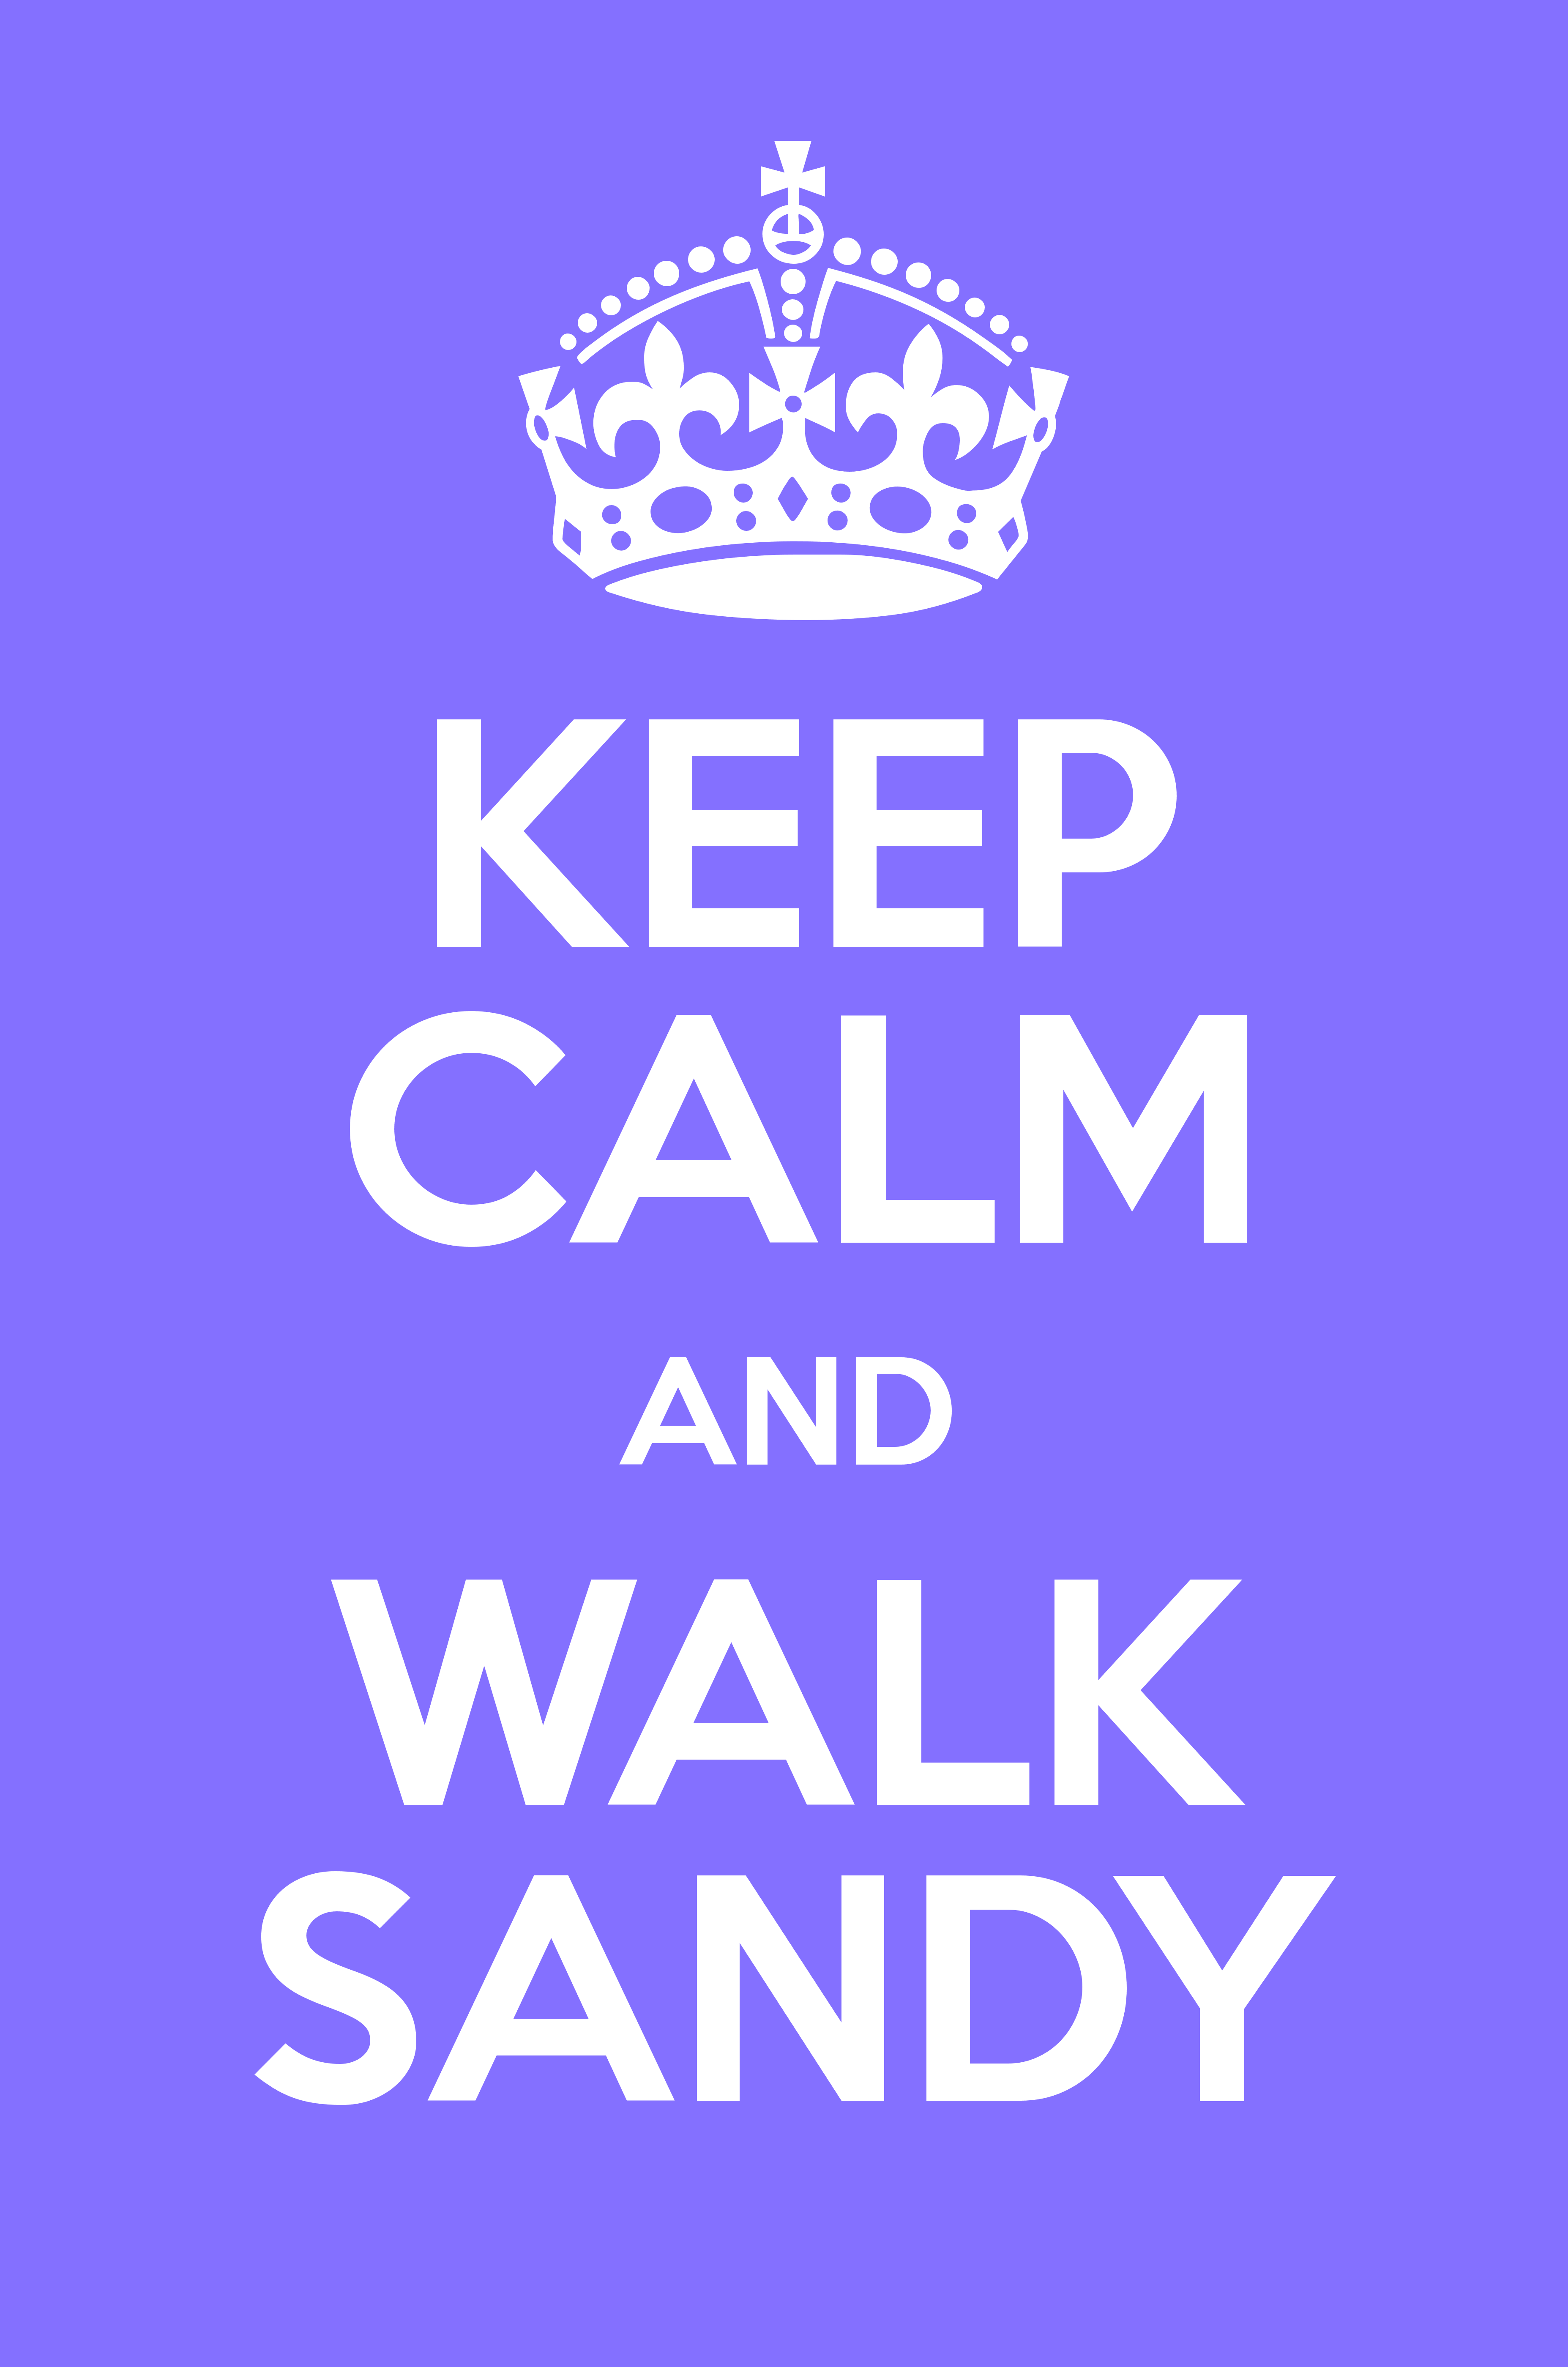 How to Stay Calm During Sandy